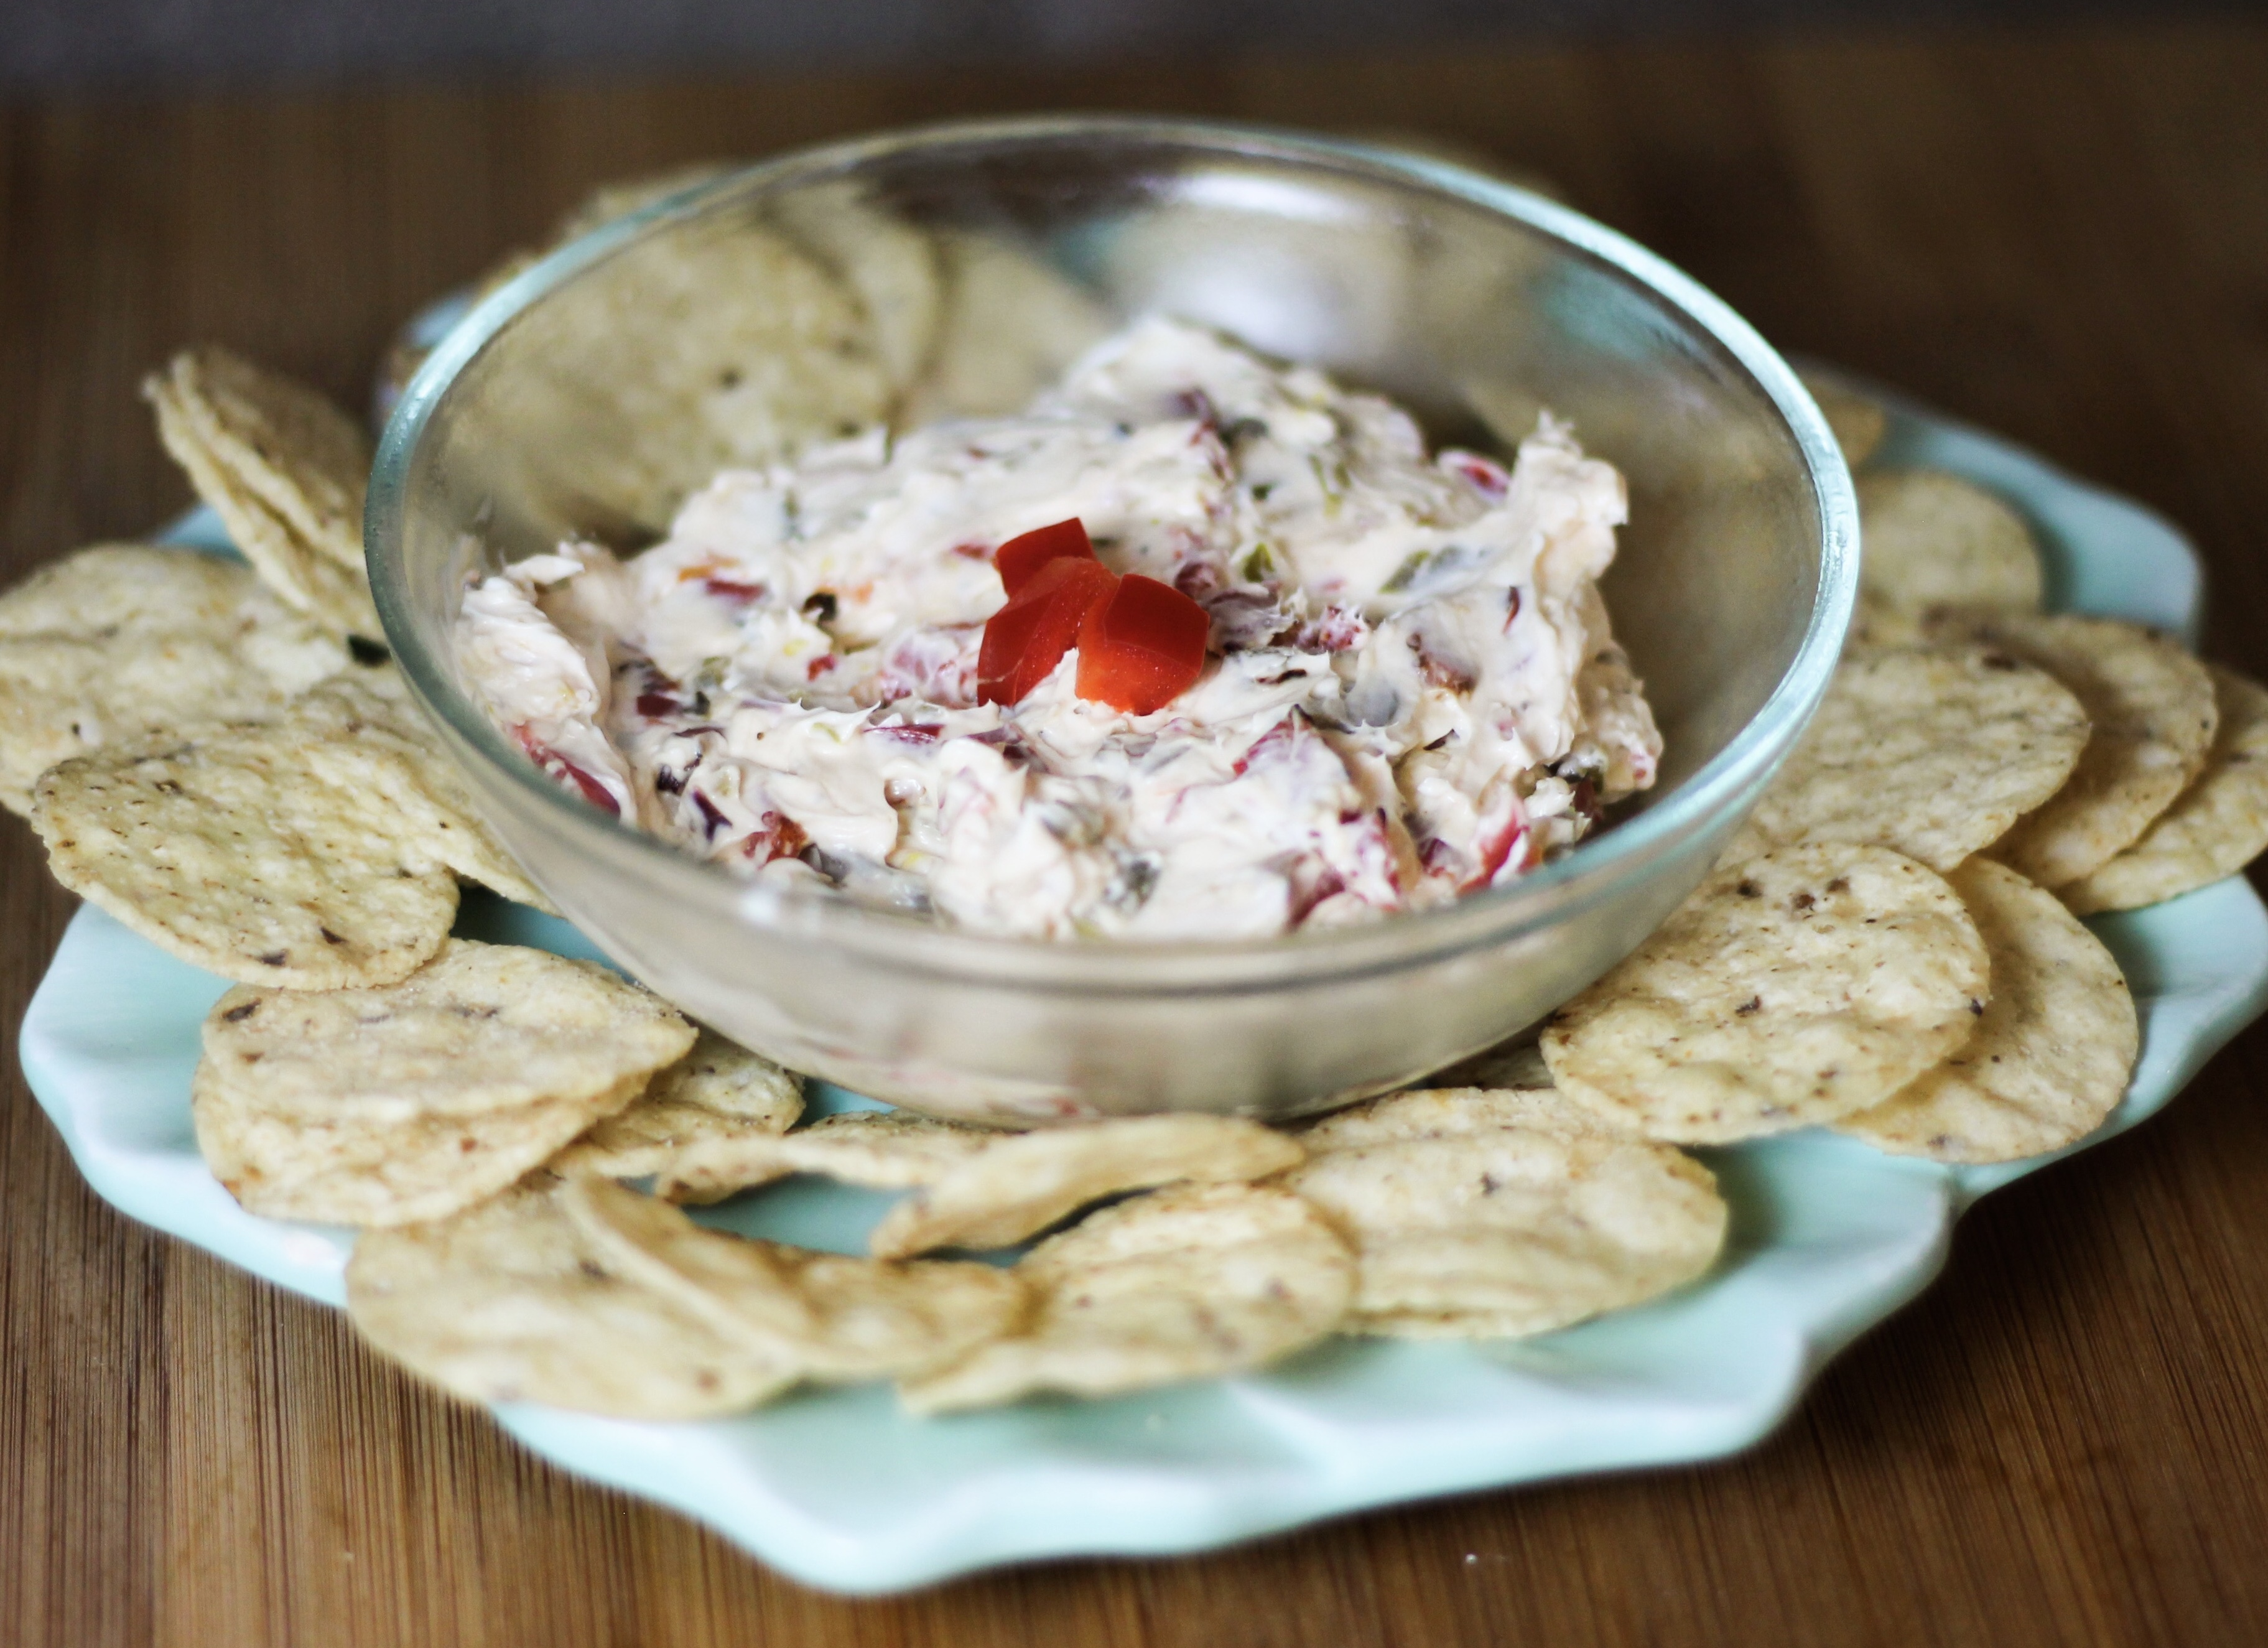 chips and dip, red bell peppers, Byers' Best Candied Jalapeños, cream cheese, friendsgiving thanksgiving ugandan food blog, easy indian, butter chicken chicken tikka masala, travel curvy plus size dark skin, quick food millennial recipes